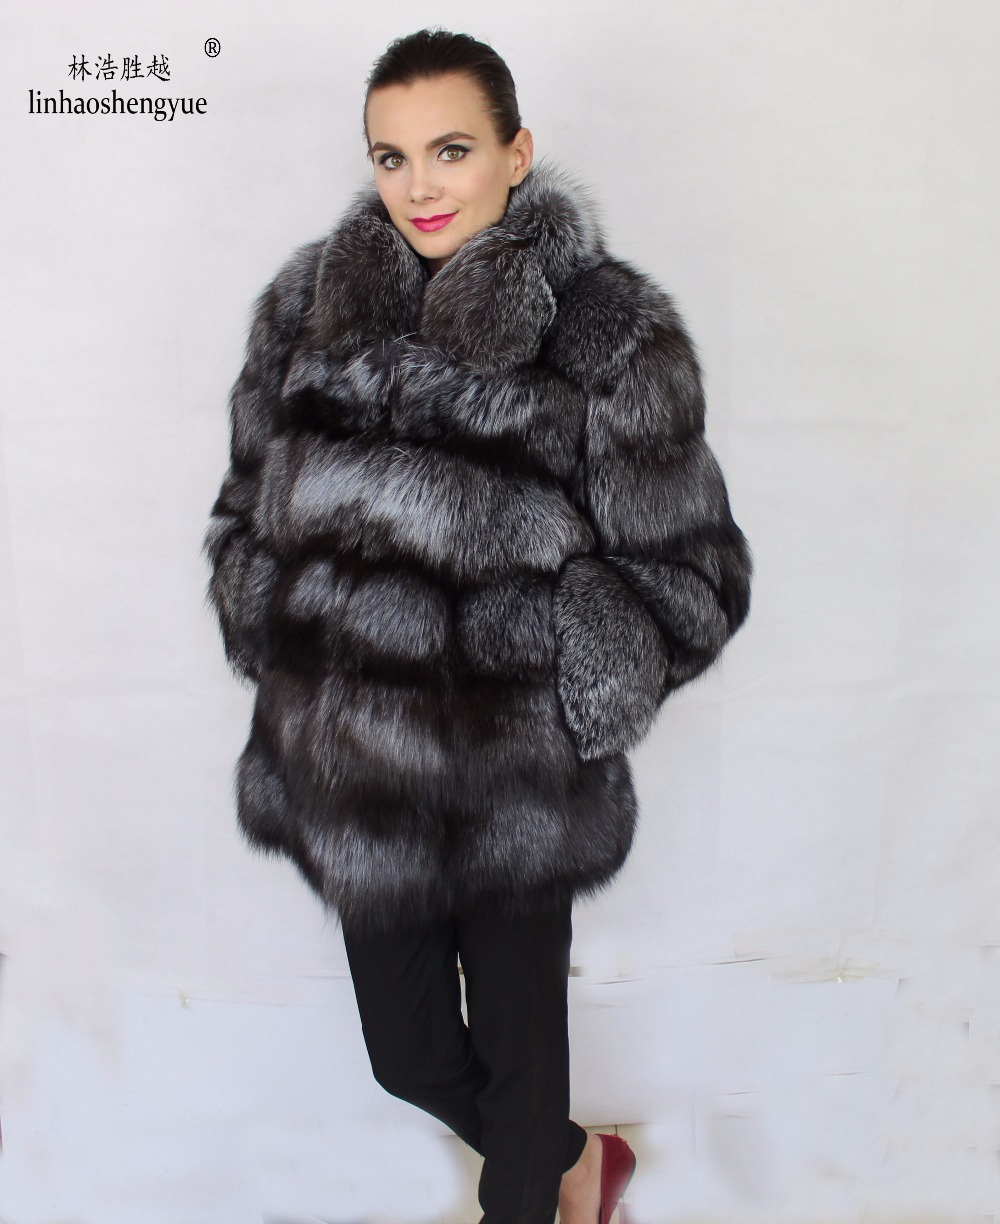 Silver Real Time Quote: Linhaoshengyue 2017Natural Real Silver Fox Fur Coat-in